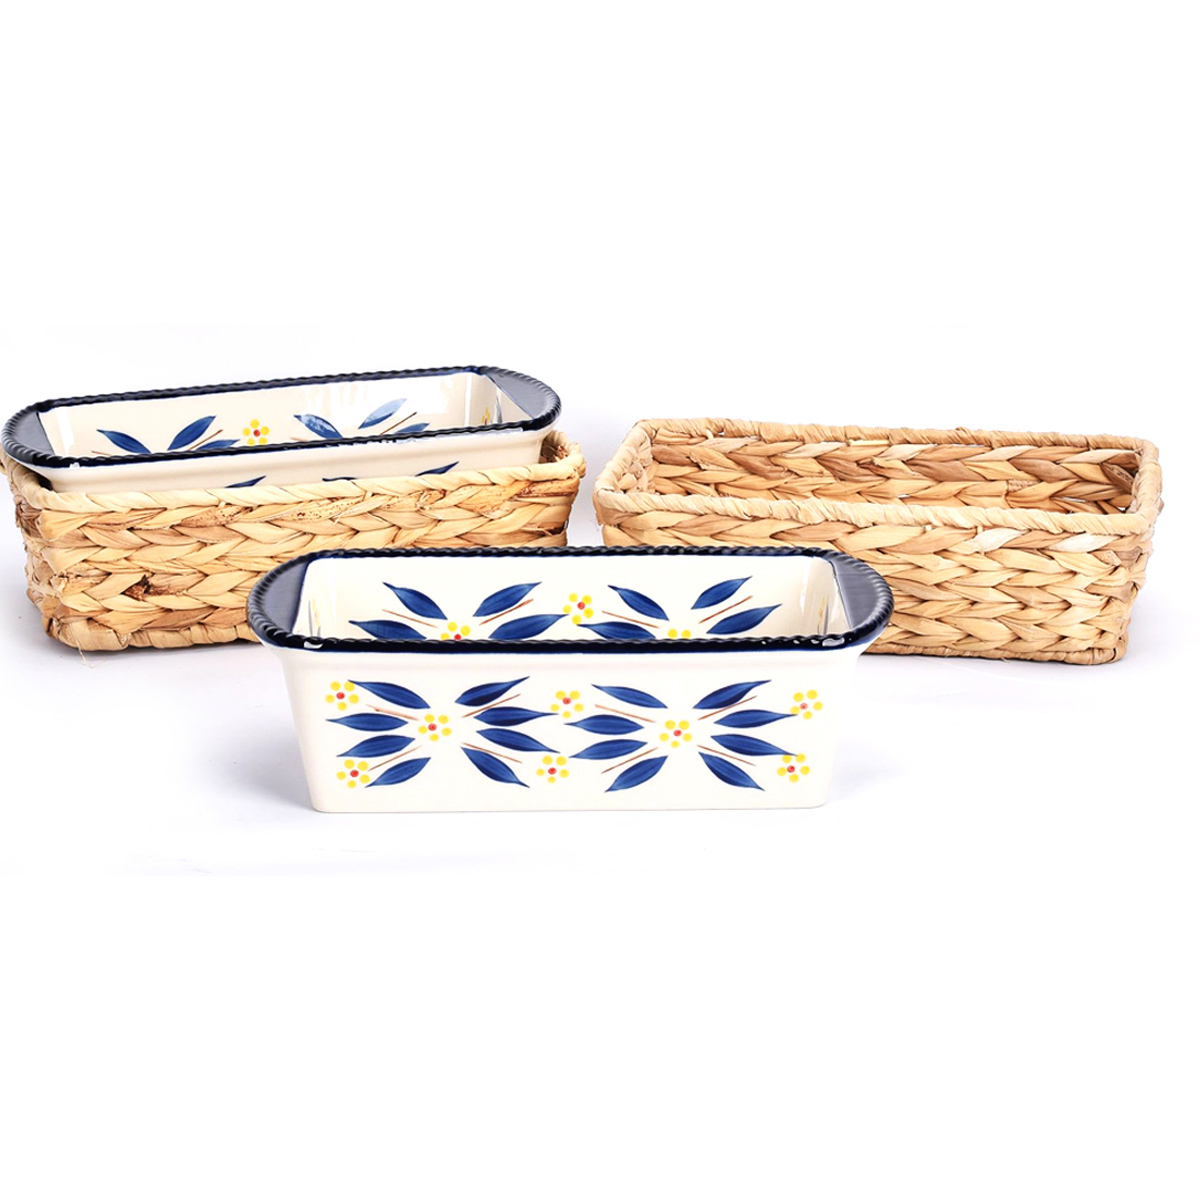 temp-tations® Old World Loaf Pans in Baskets – 4 Piece – Blue